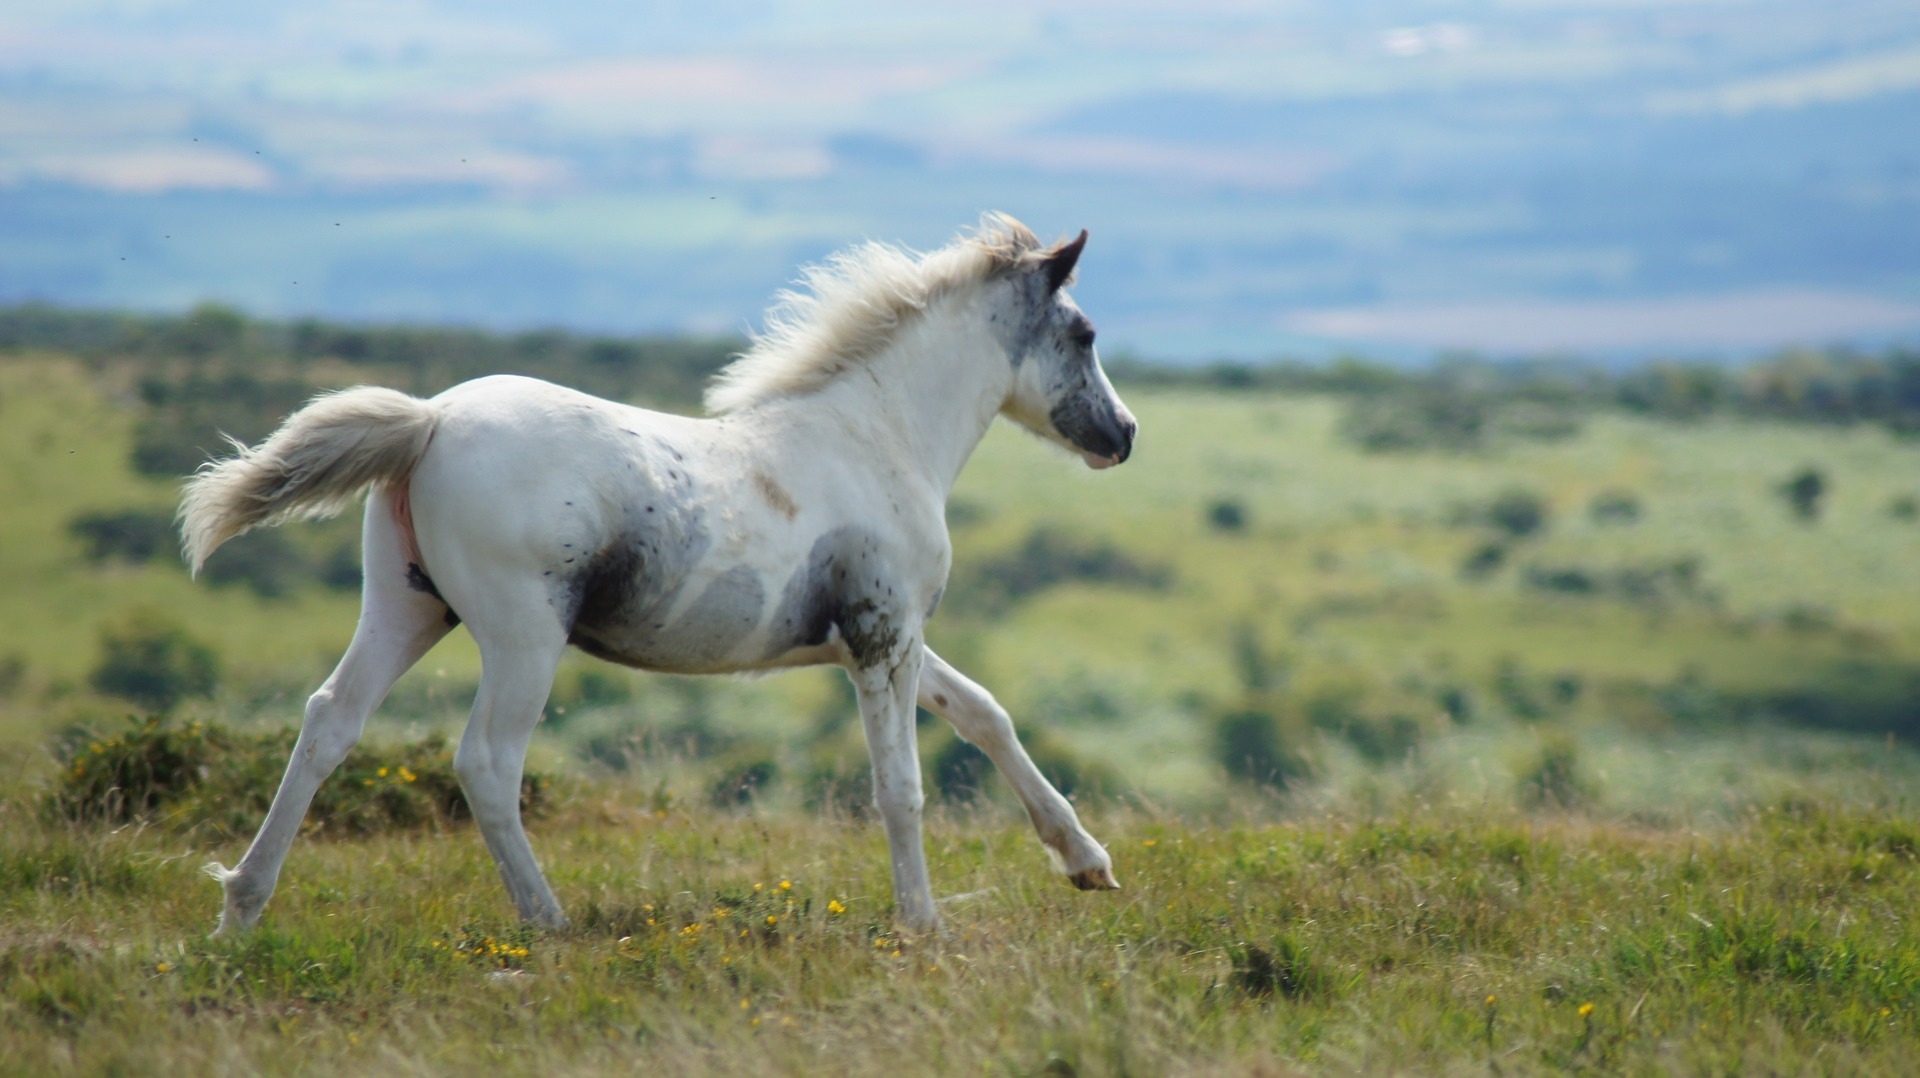 Horse Pictures Hd Posted By Zoey Cunningham